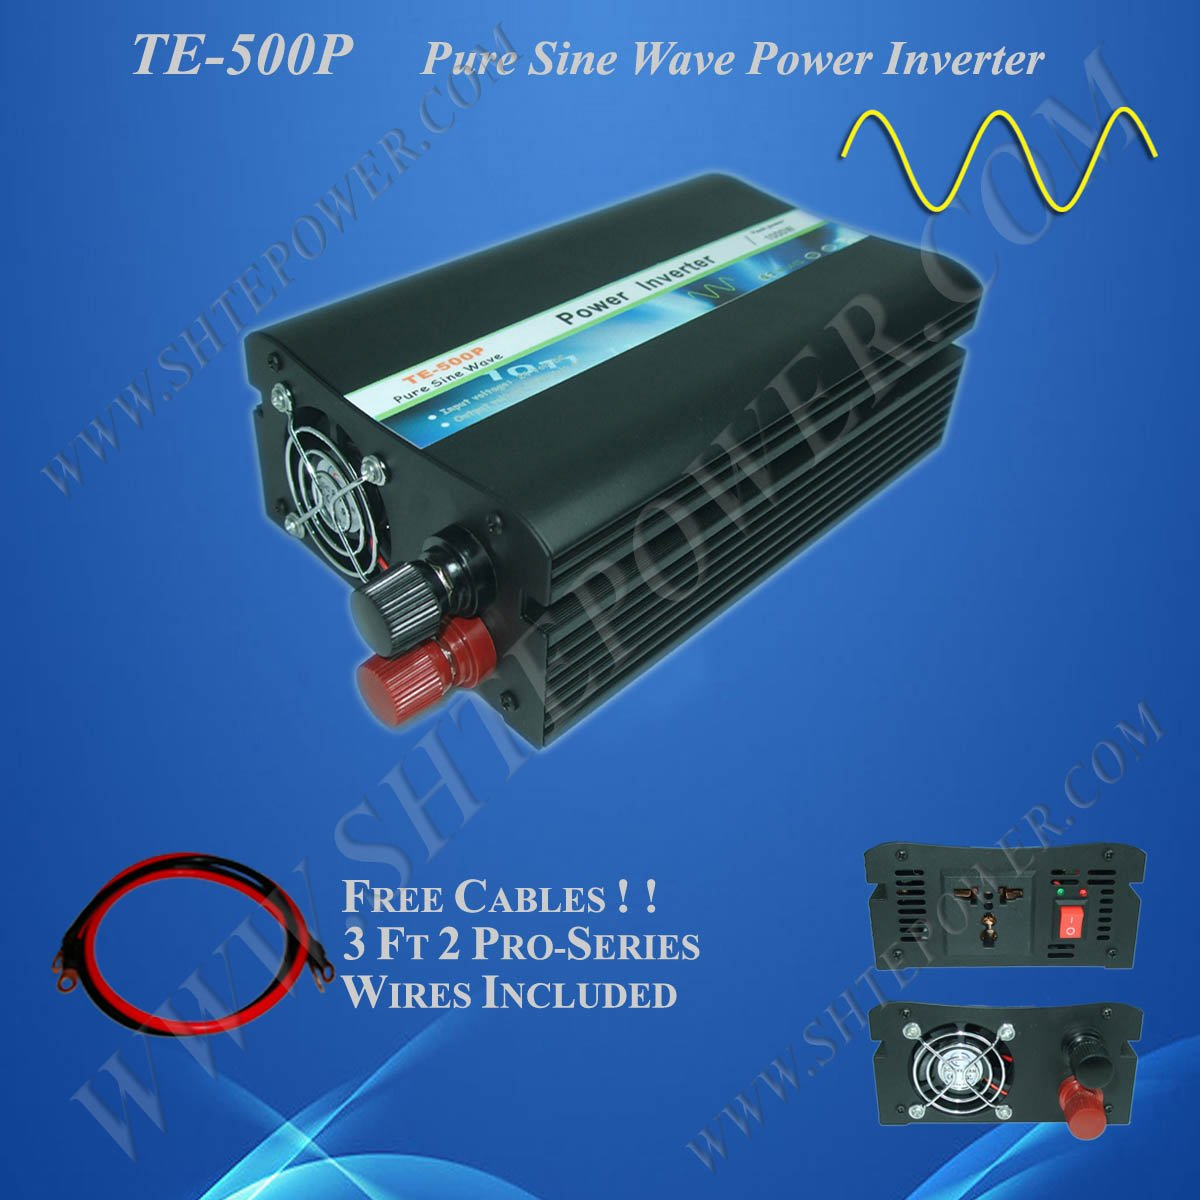 500w Solar Invertor, Pure Sine Wave Inverter, DC 12v to 220v Power Inverter игрушки для ванны veld co игра рыбалка 67818